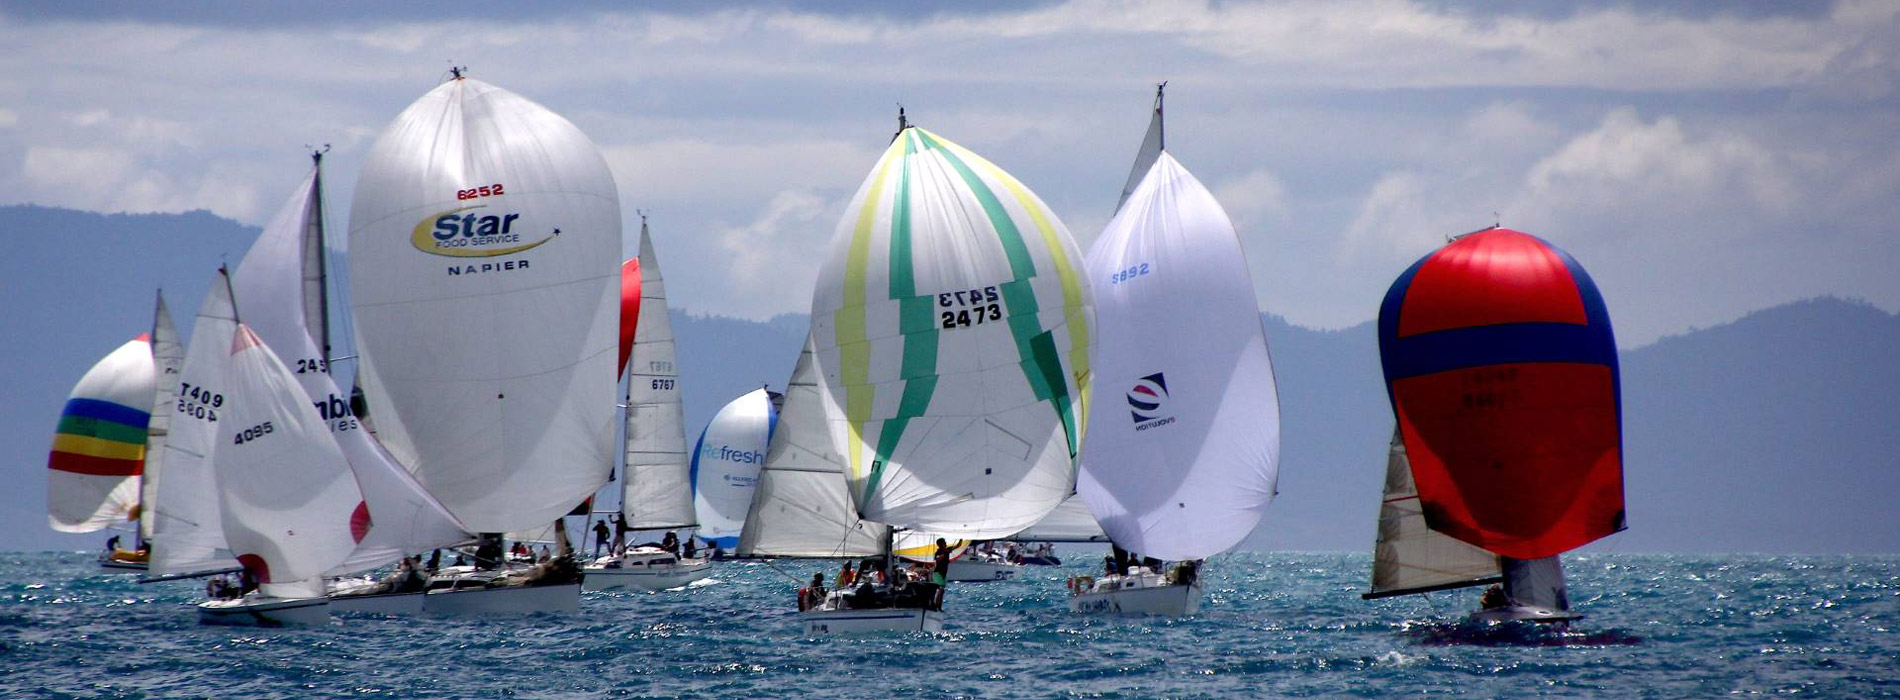 Yachts from the Tasman Bay Cruising Club with spinnakers up!